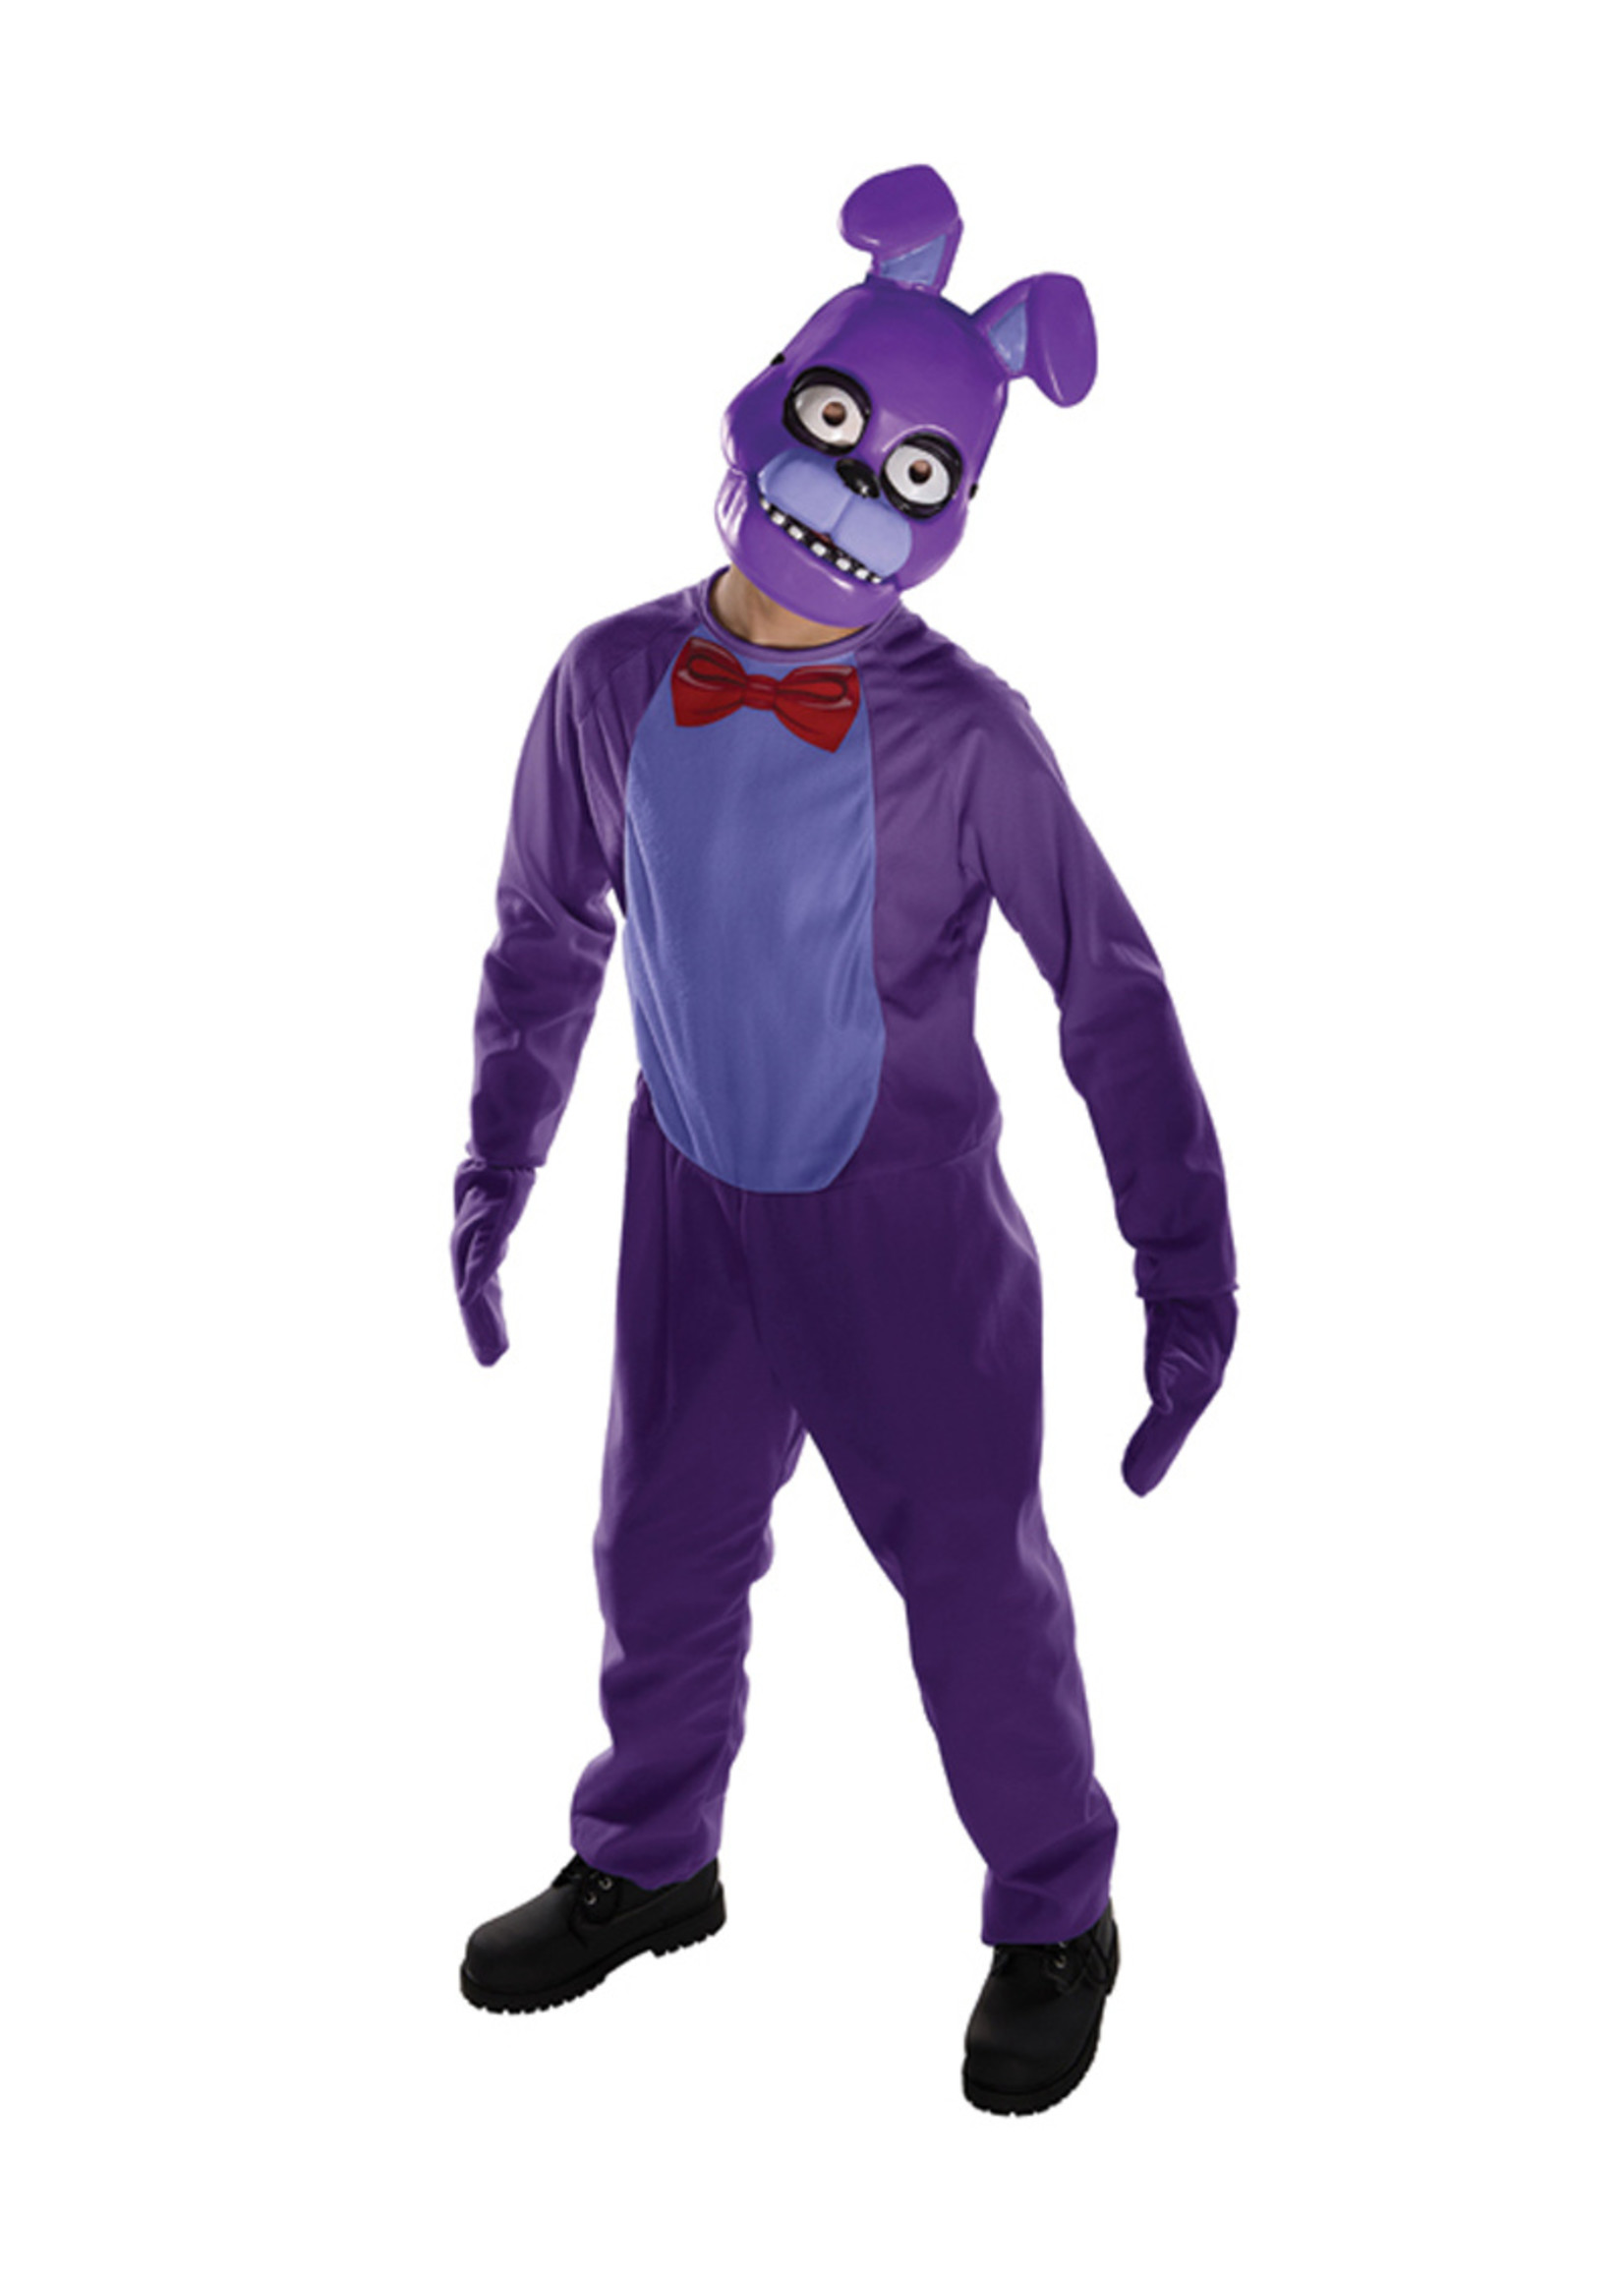 Bonnie - Five Nights at Freddy's Costume - Boys